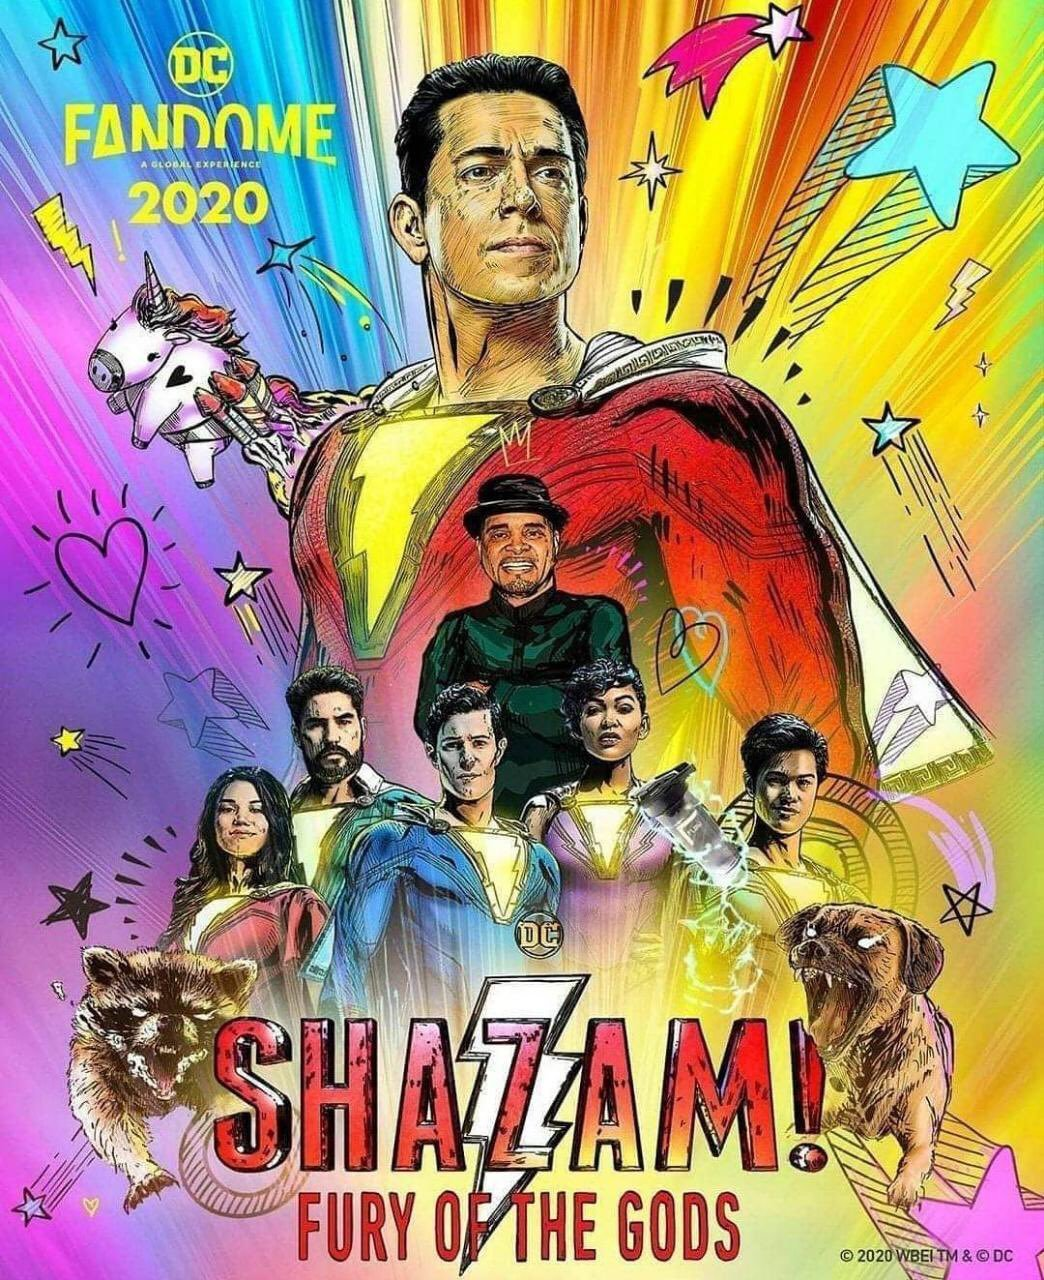 Shazam! Fury of the Gods